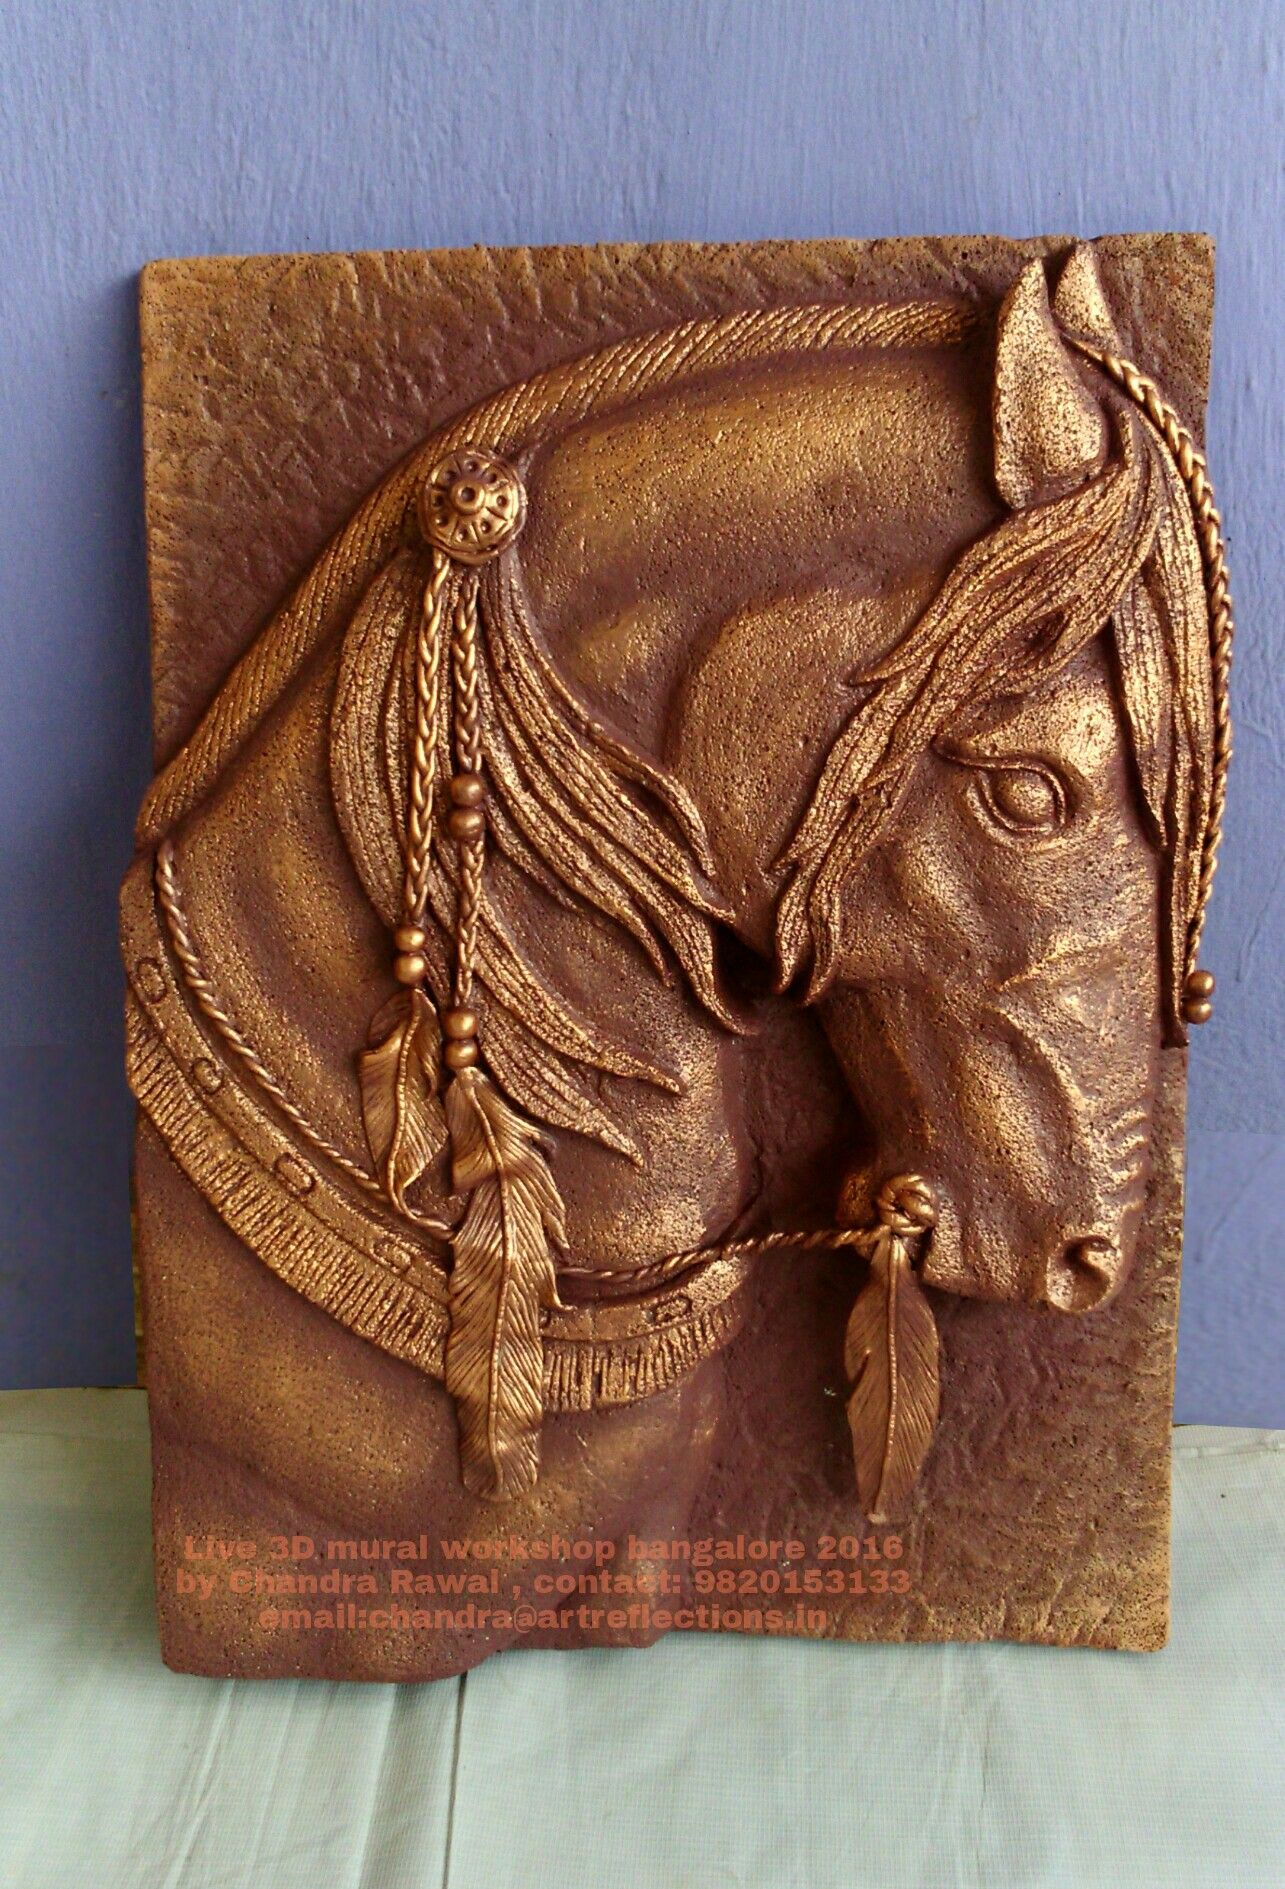 Horse hand carved relief mural on siporex block